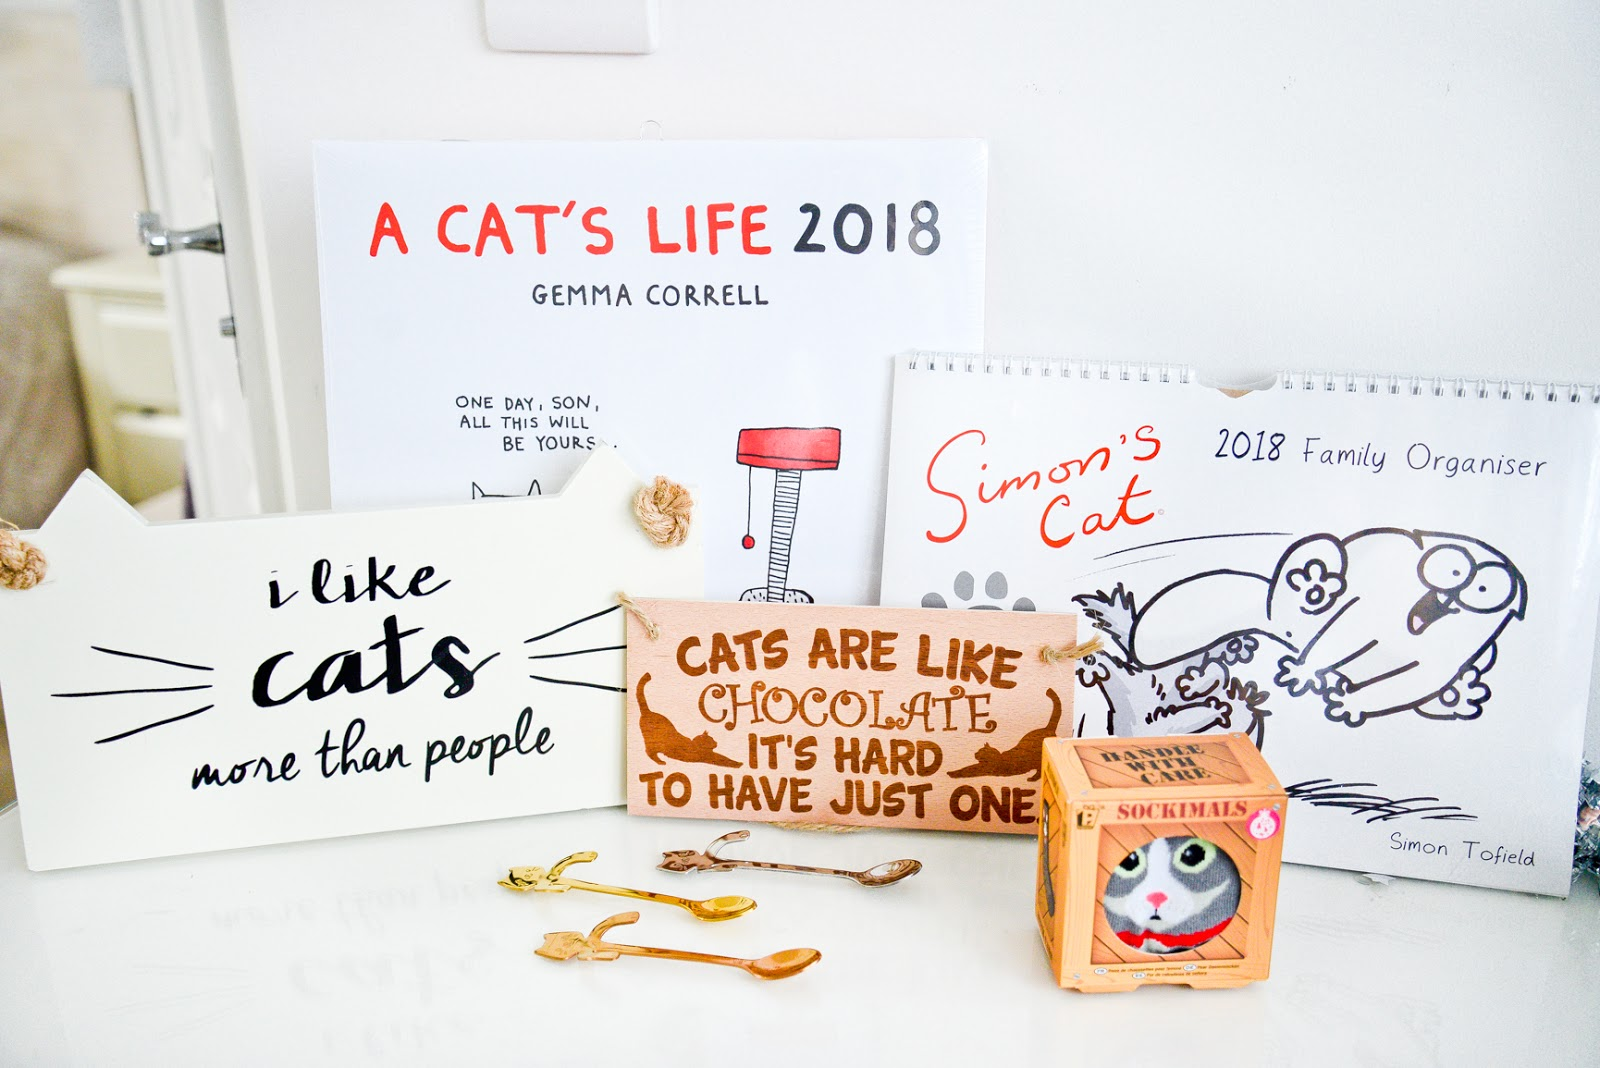 cat presents, presents for cat lovers, cat calendars, cat gifts